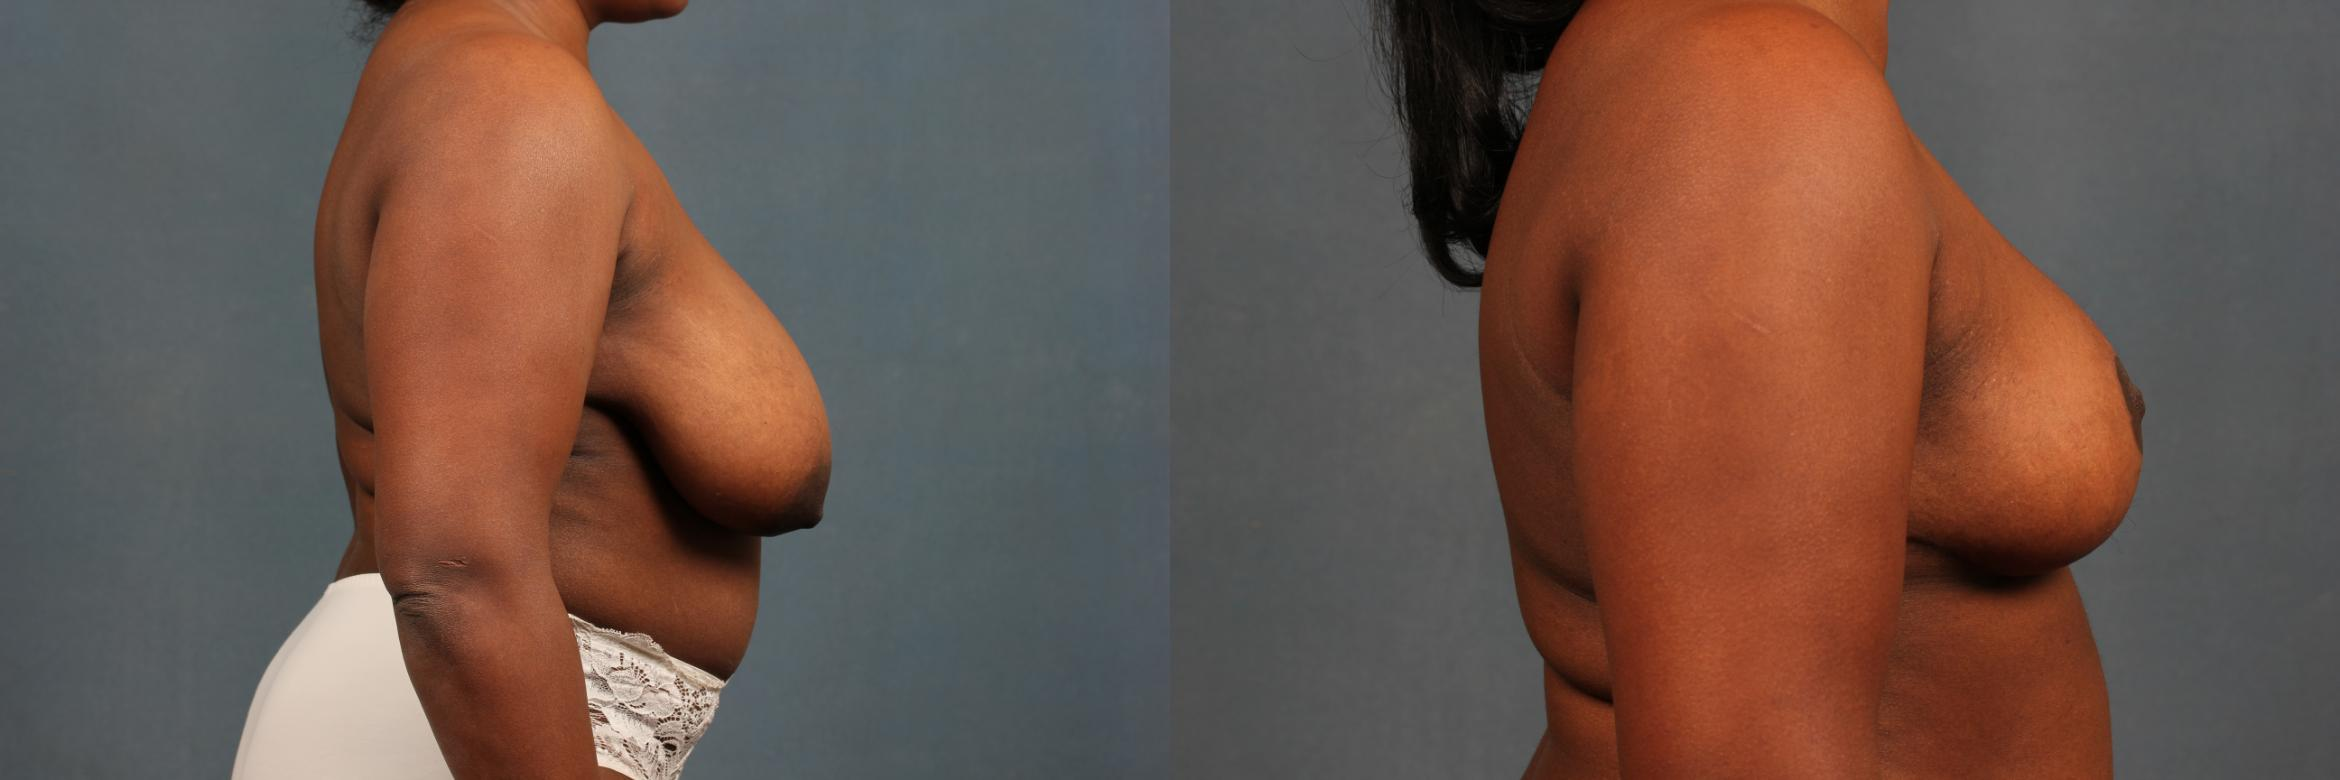 Reduction Case 449 Before & After View #5 | Louisville & Lexington, KY | CaloAesthetics® Plastic Surgery Center